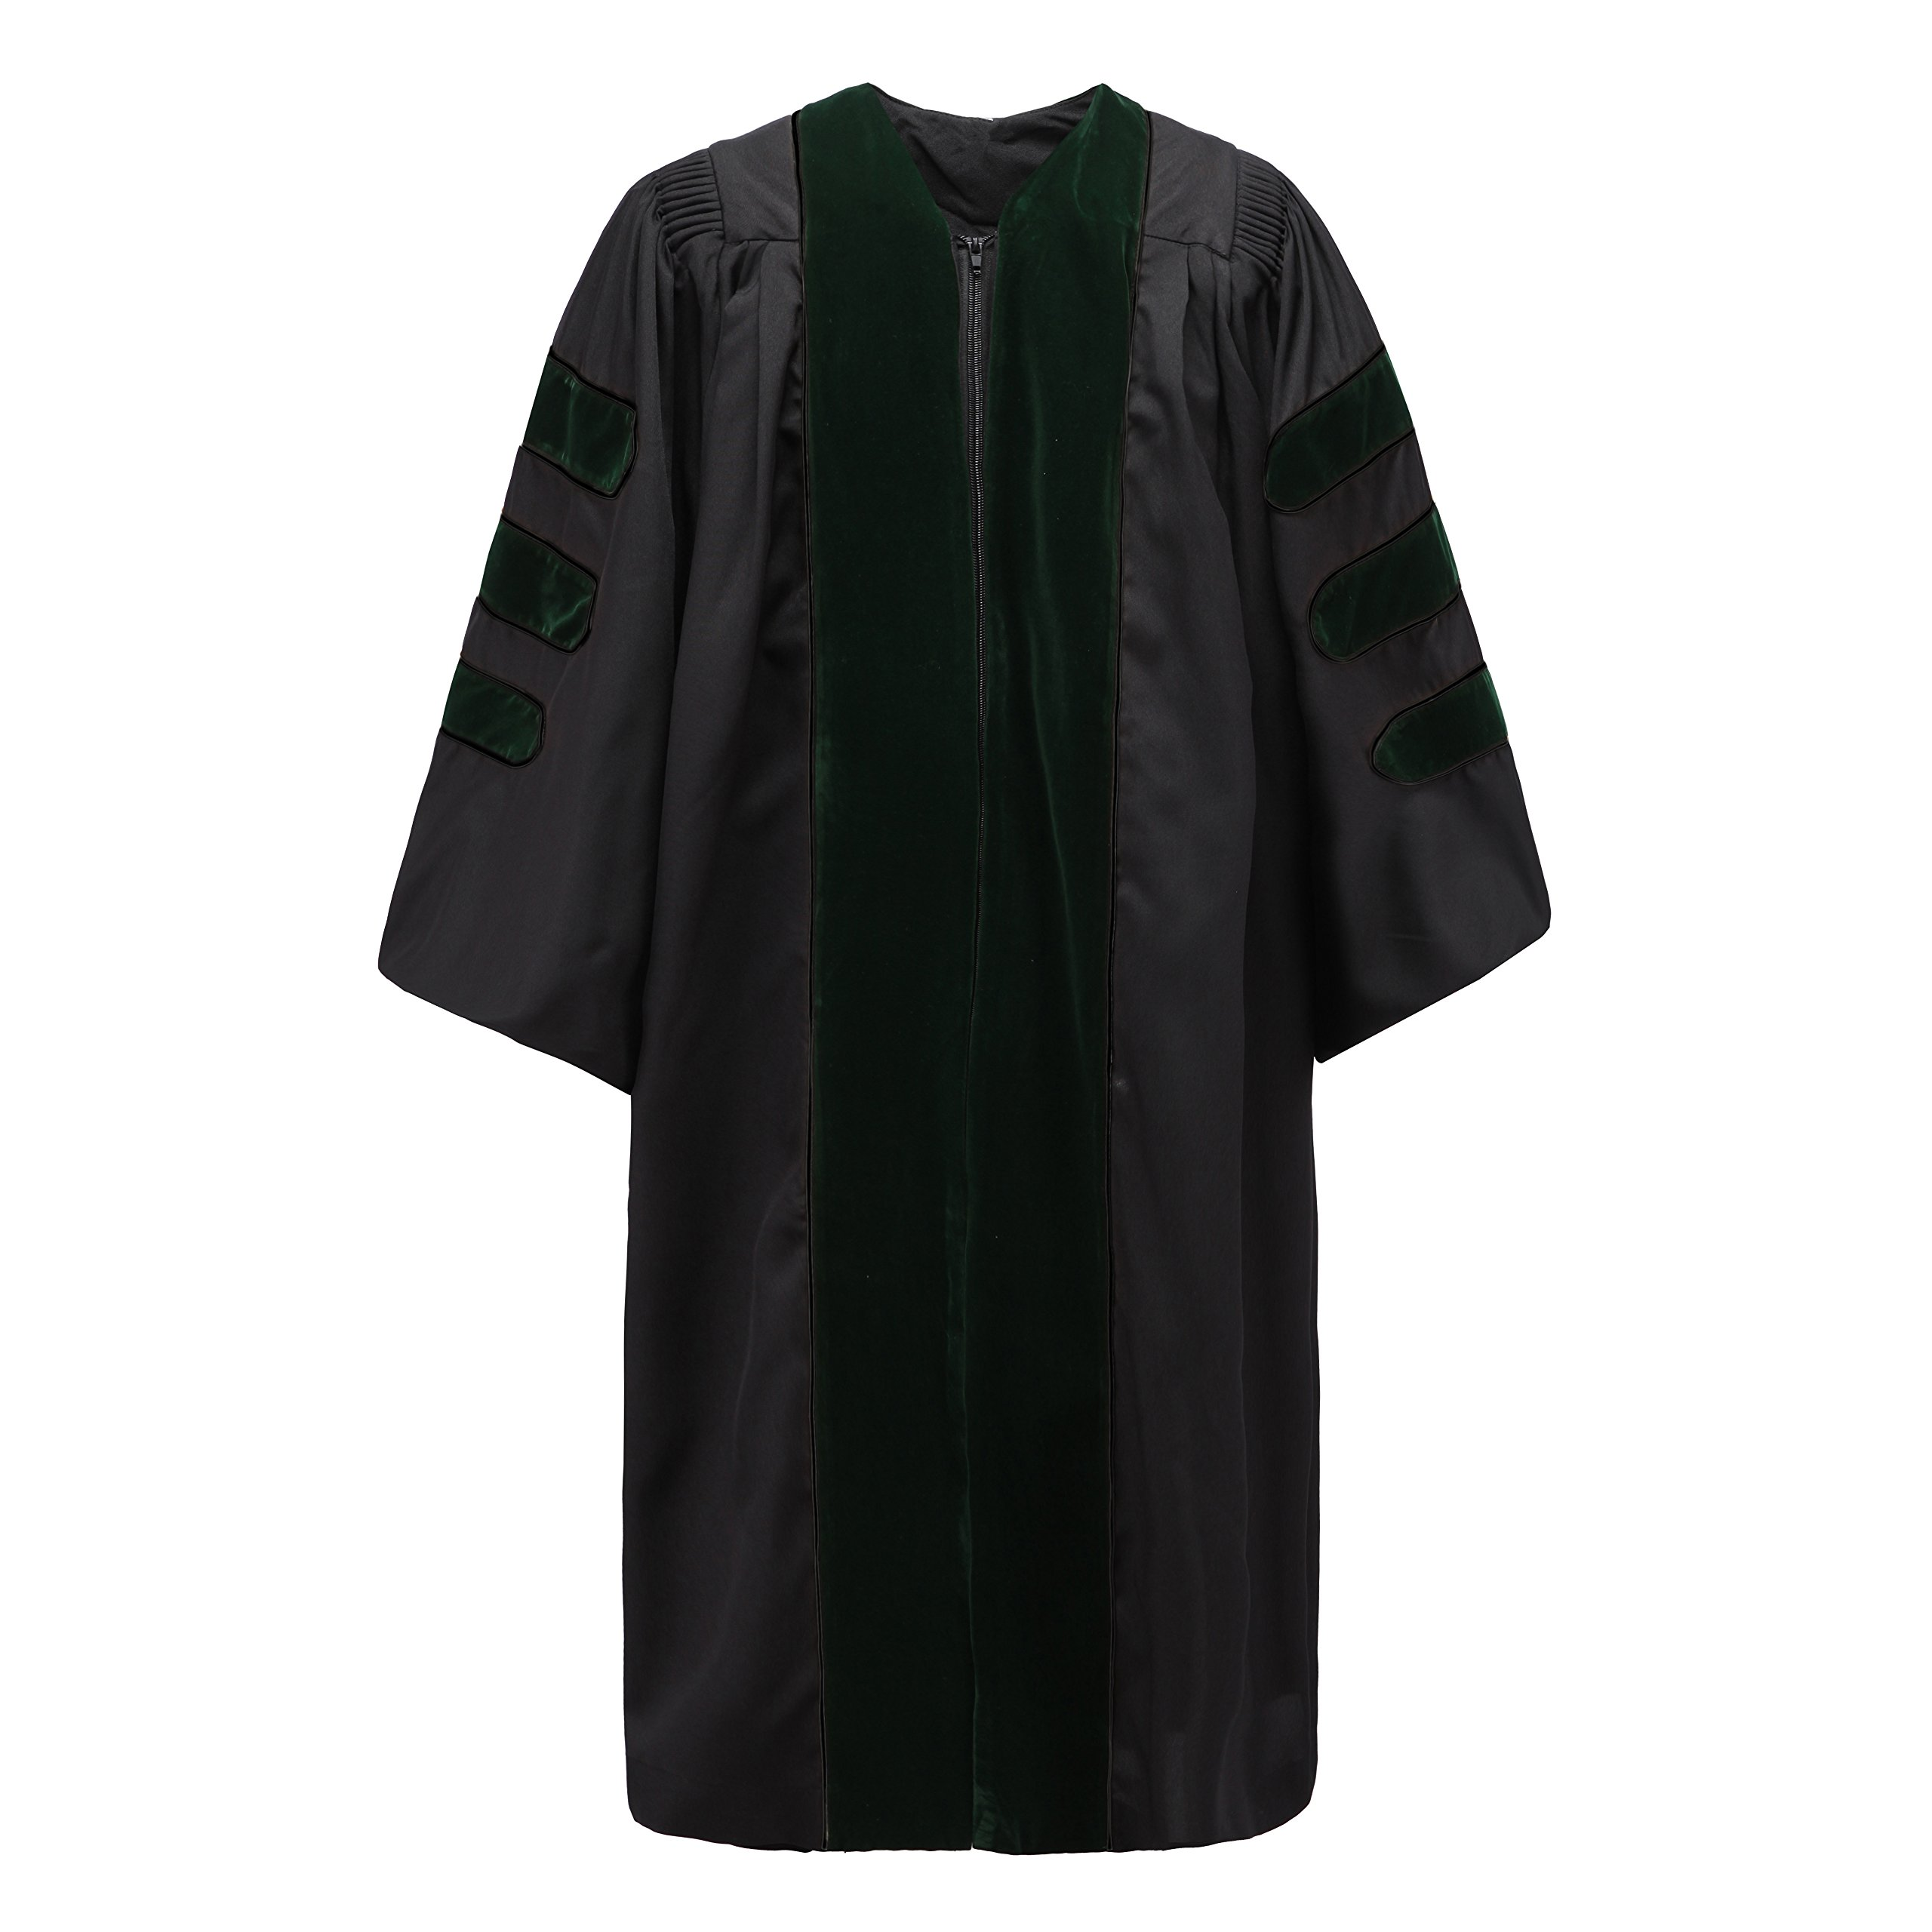 Robe Depot Unisex Deluxe Doctoral Graduation Gown without Piping, Green Velvet Size 54 by Robe Depot